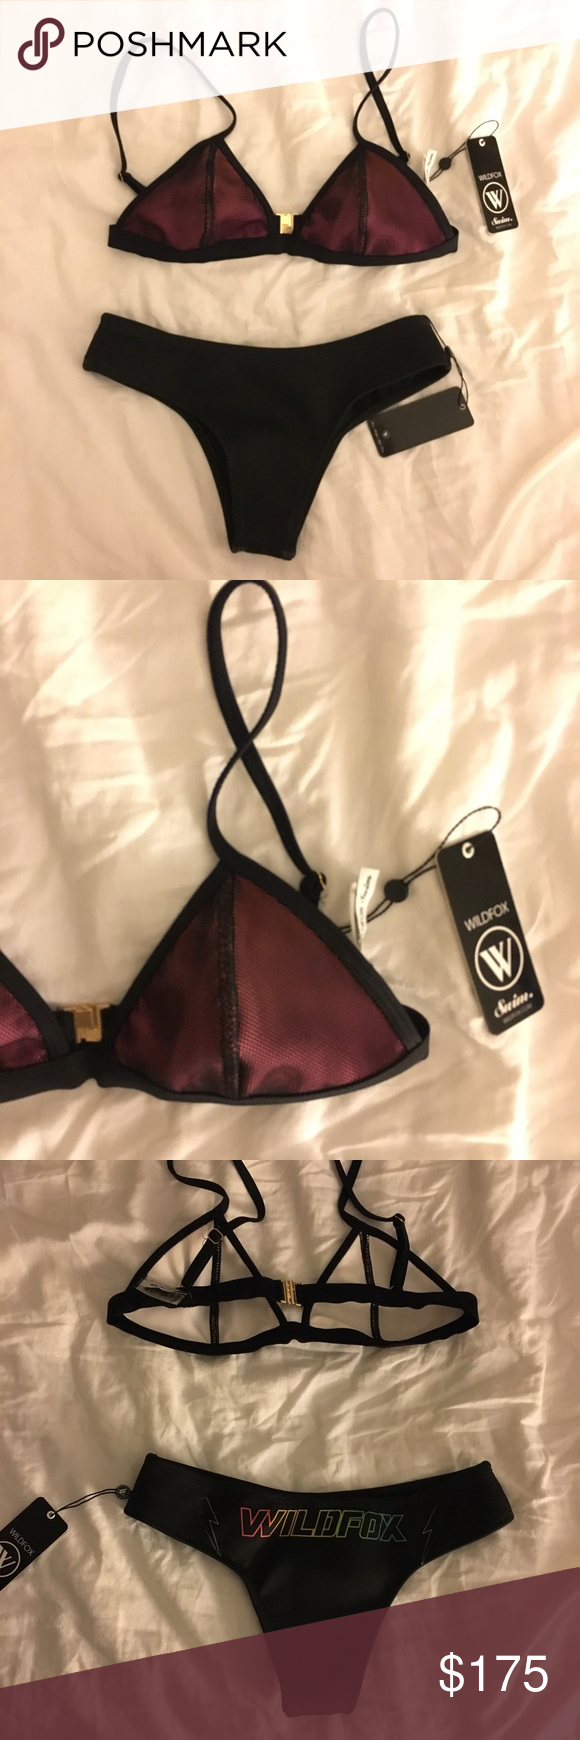 "Wildfox bikini Cheeky bottoms with 7.5"" rise, 13"" waist across. Top band is 28.5"" flat from clasp to clasp. 6.5"" cup bottom. Neoprene material. Mesh and neoprene on top. Wildfox graphic on bottom Wildfox Swim Bikinis"